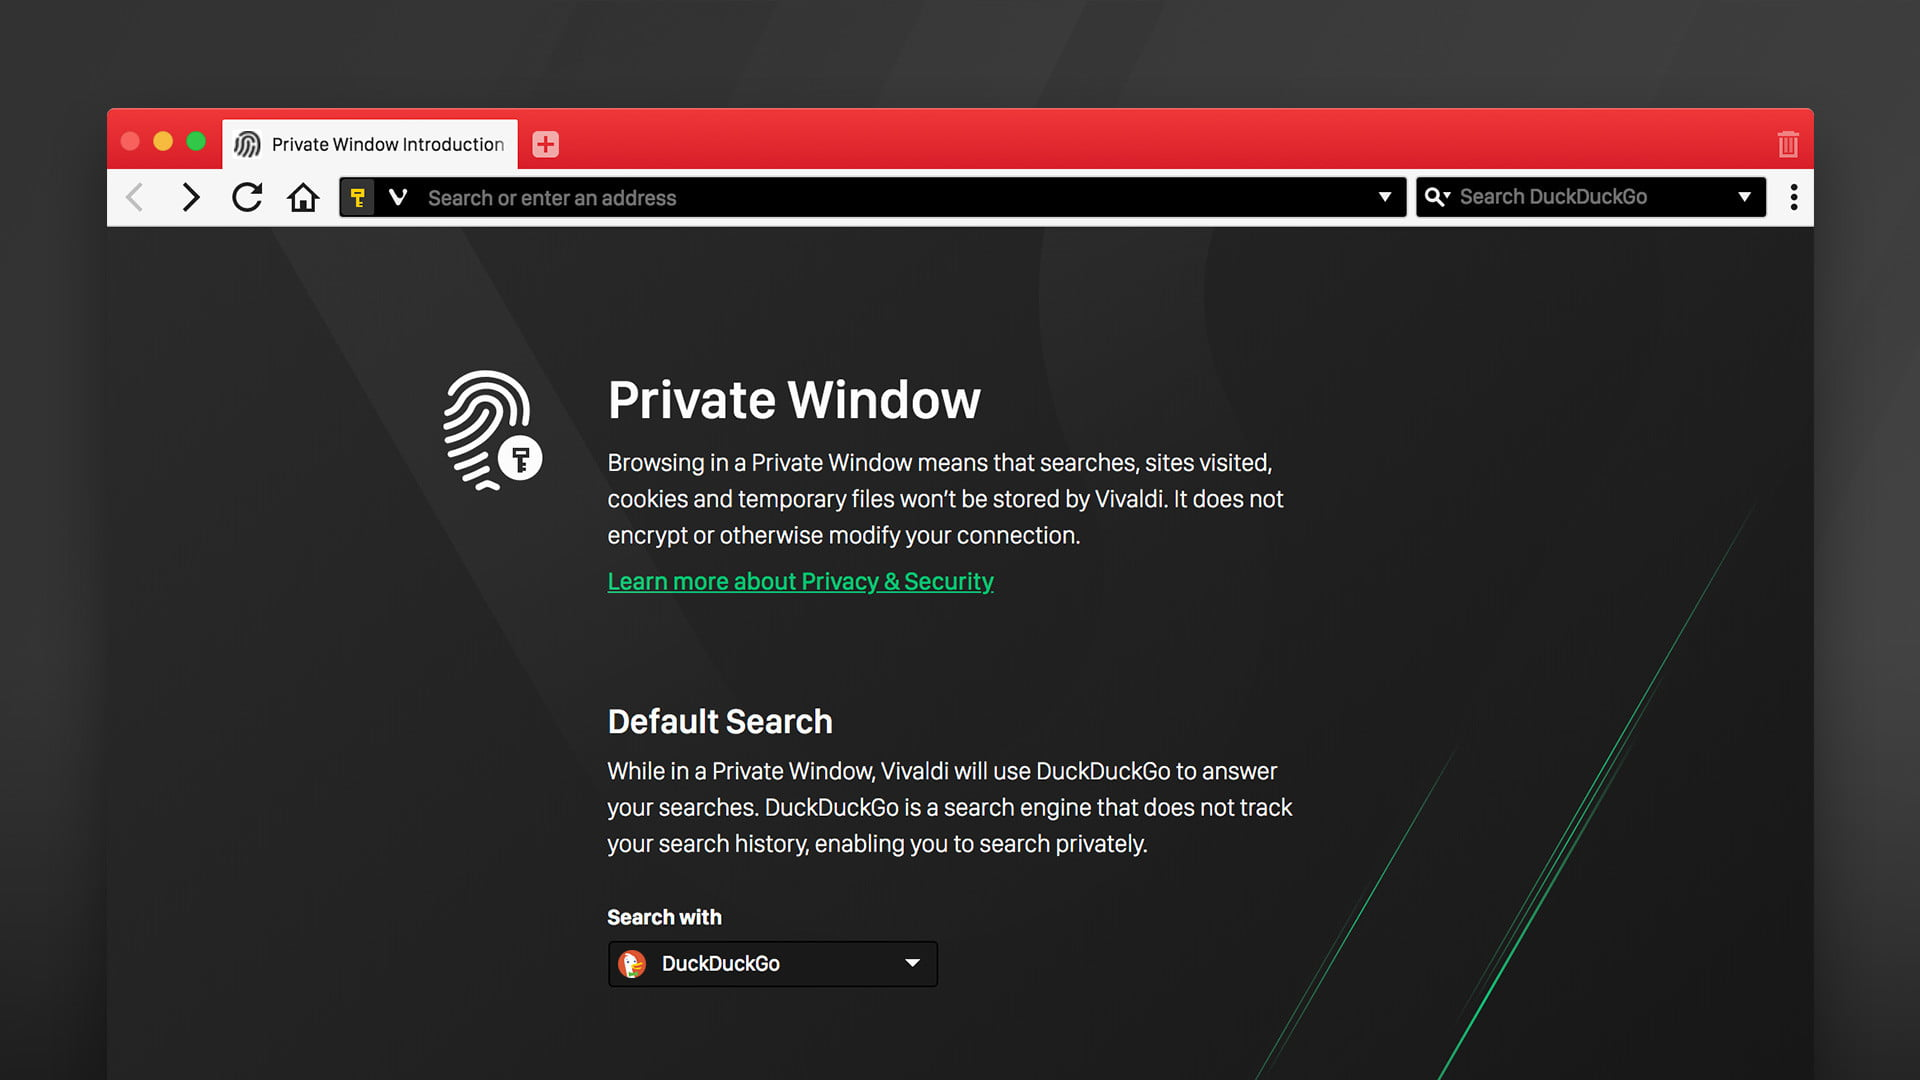 Vivaldi and DuckDuckGo Join Forces to Keep Search Habits